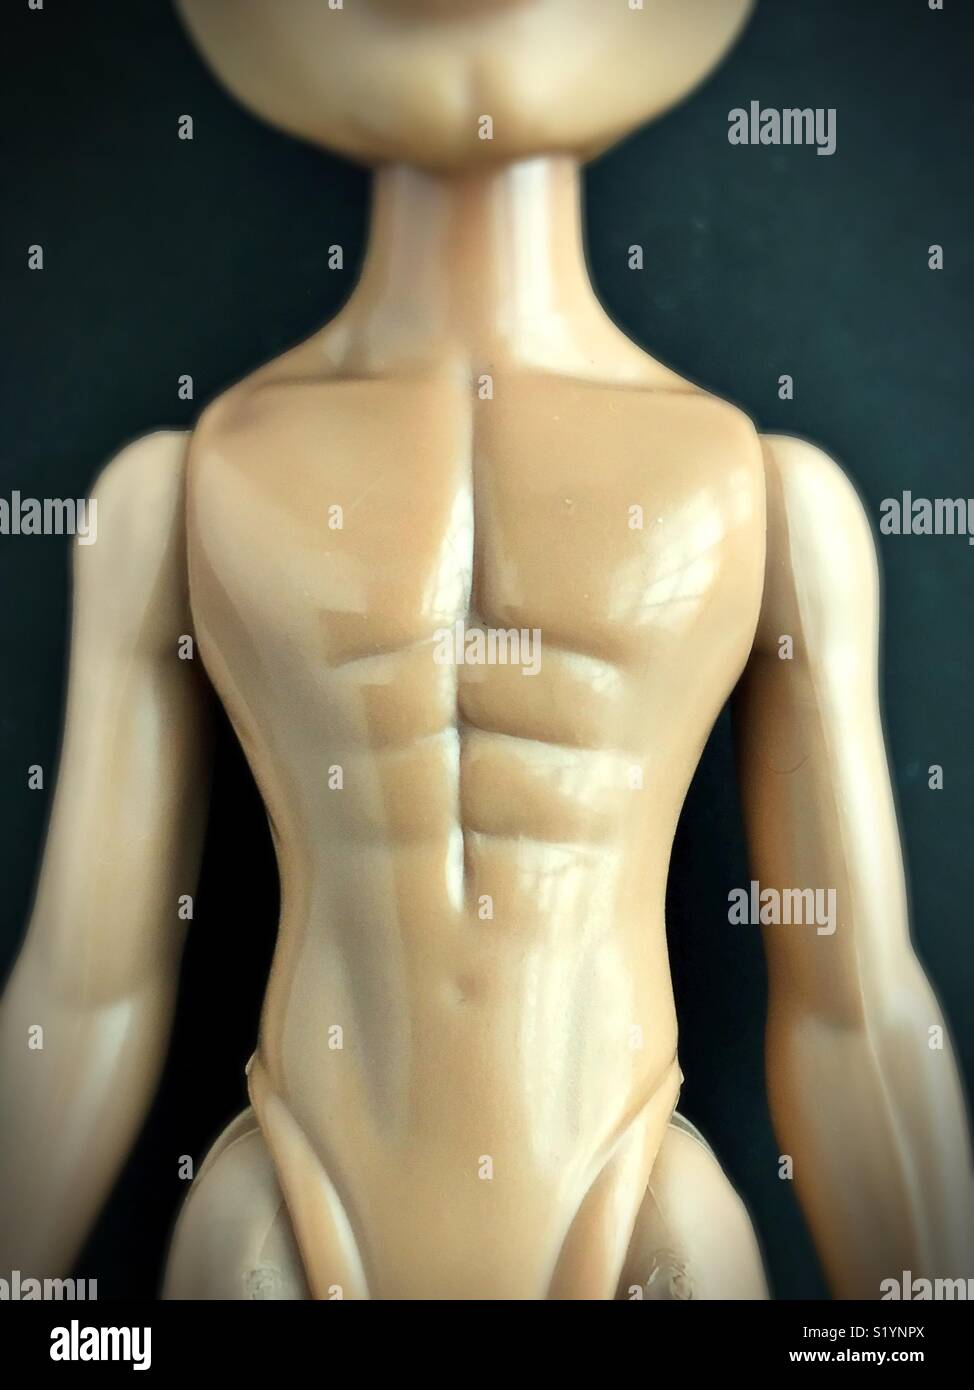 Close up of six pack abs on a male doll. - Stock Image